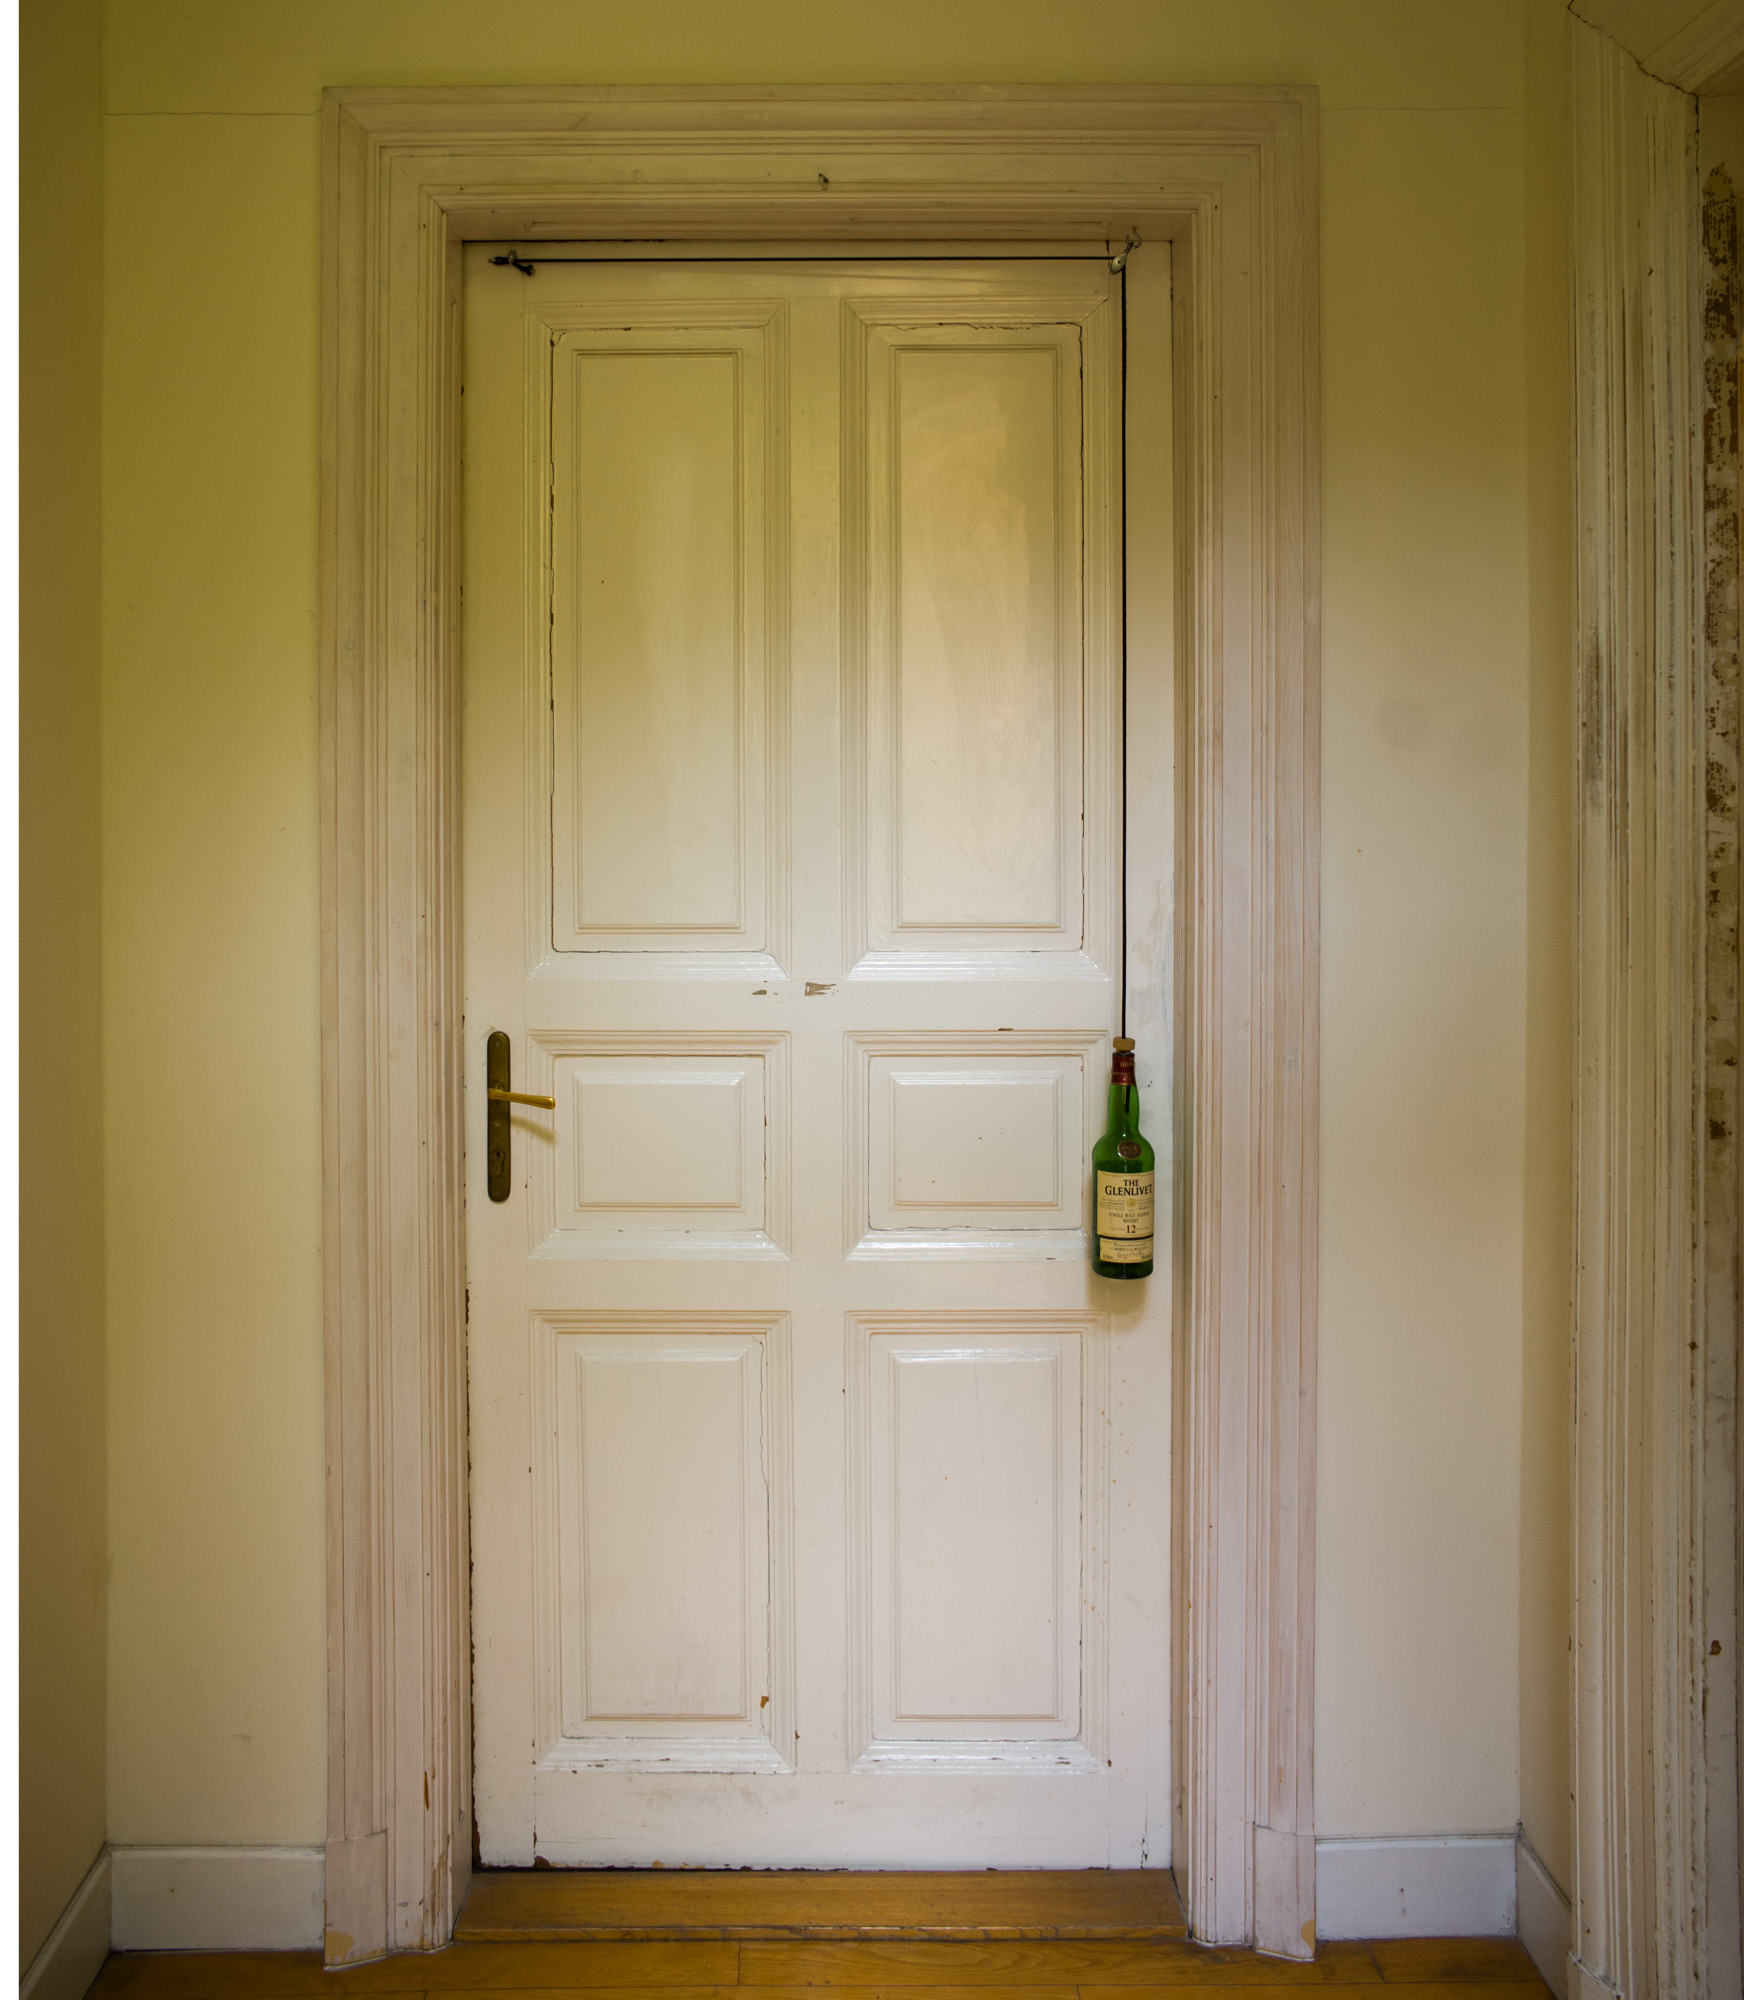 Brody House door closes with a whiskey bottle on a pulley